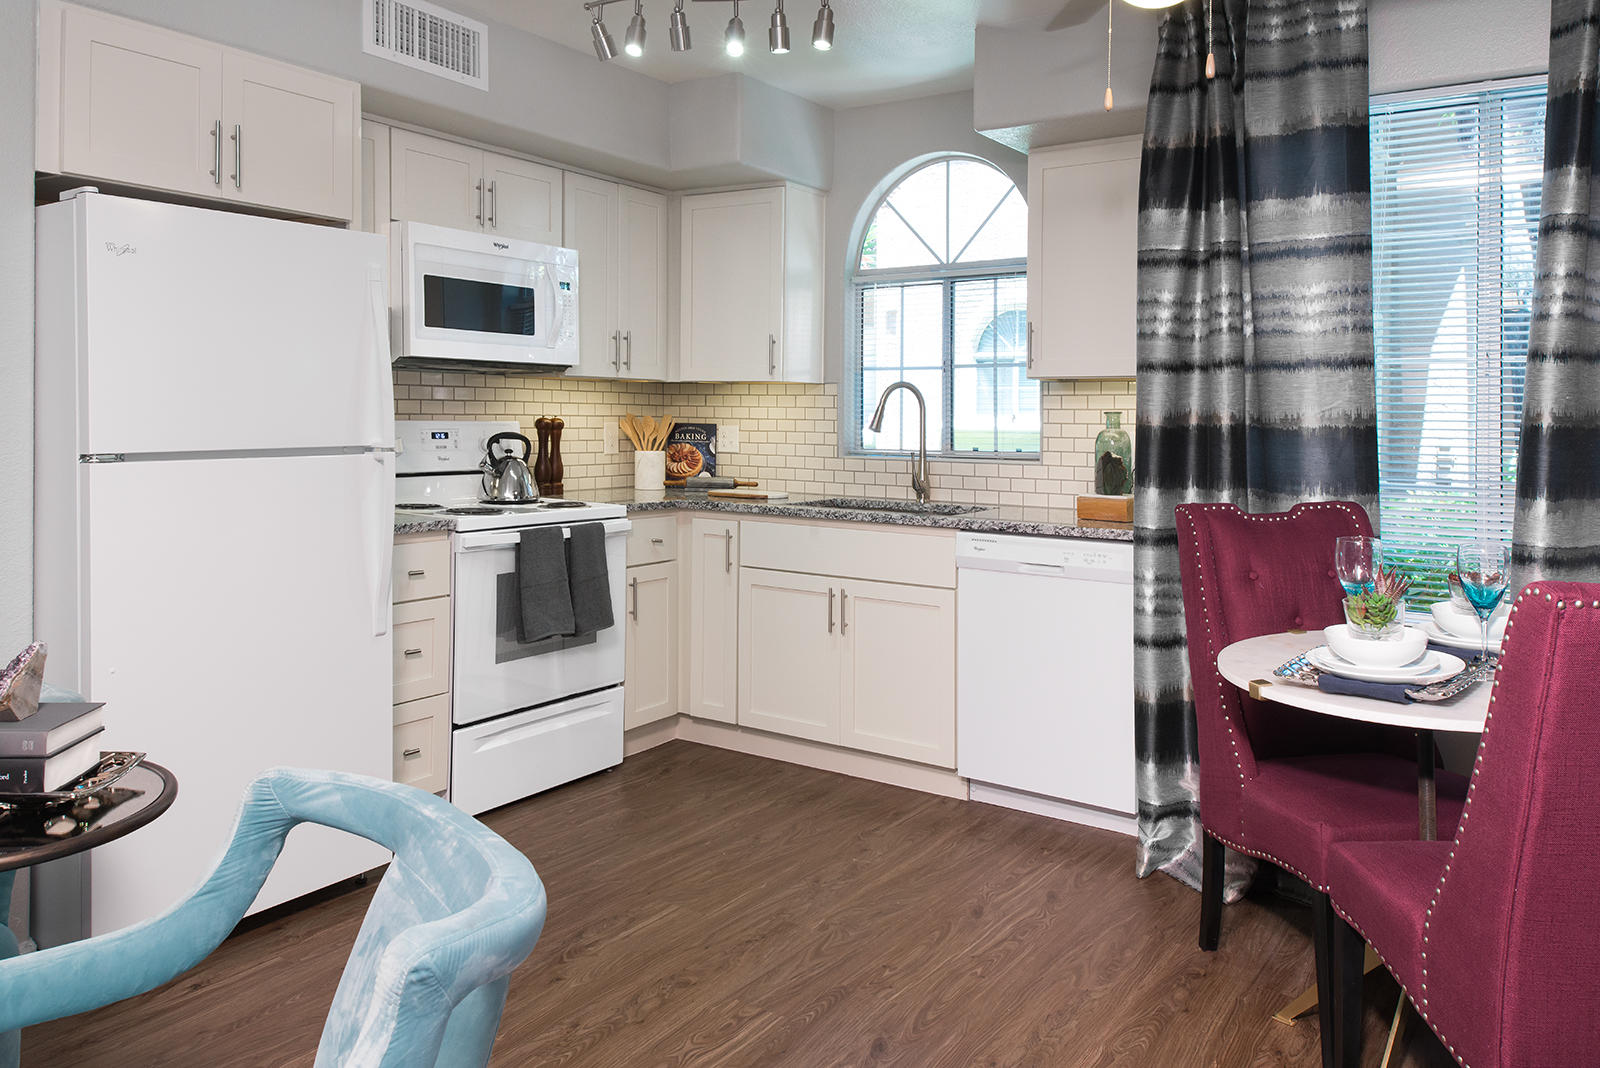 Attiva Valley View Active Living Apartments by Cortland image 1